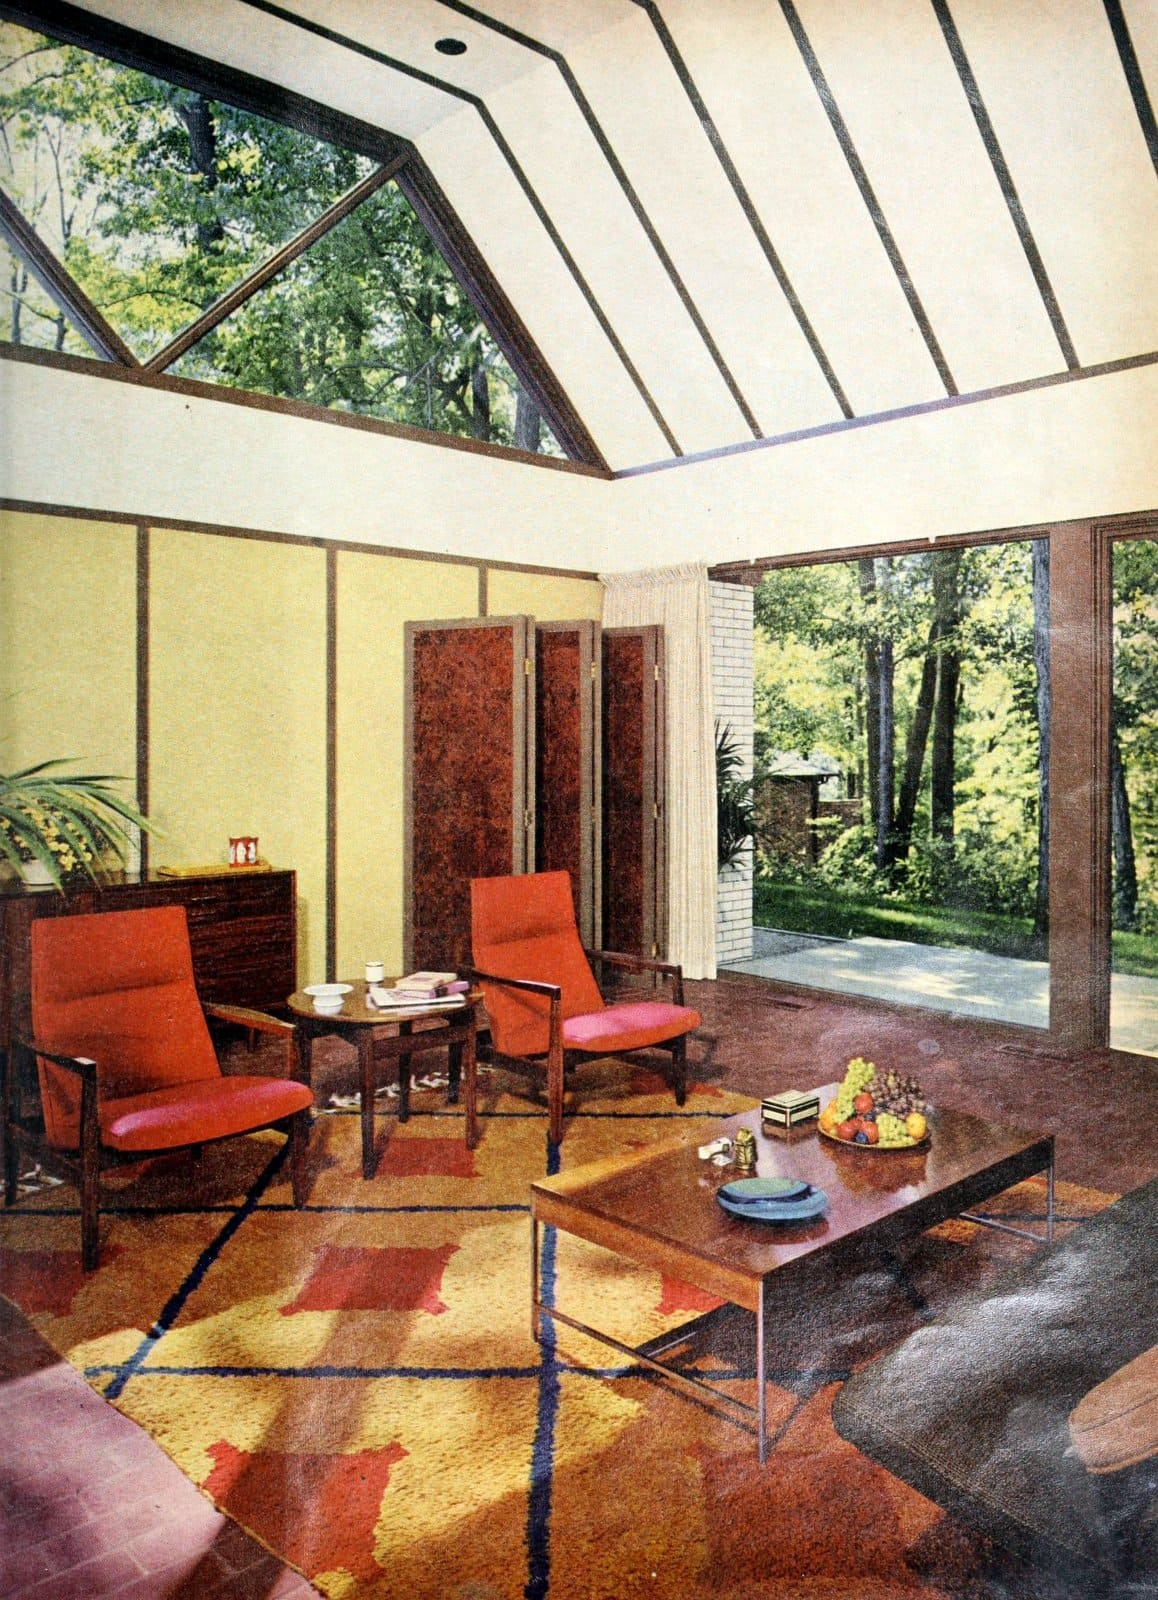 Sunroom-style vintage 60s living room